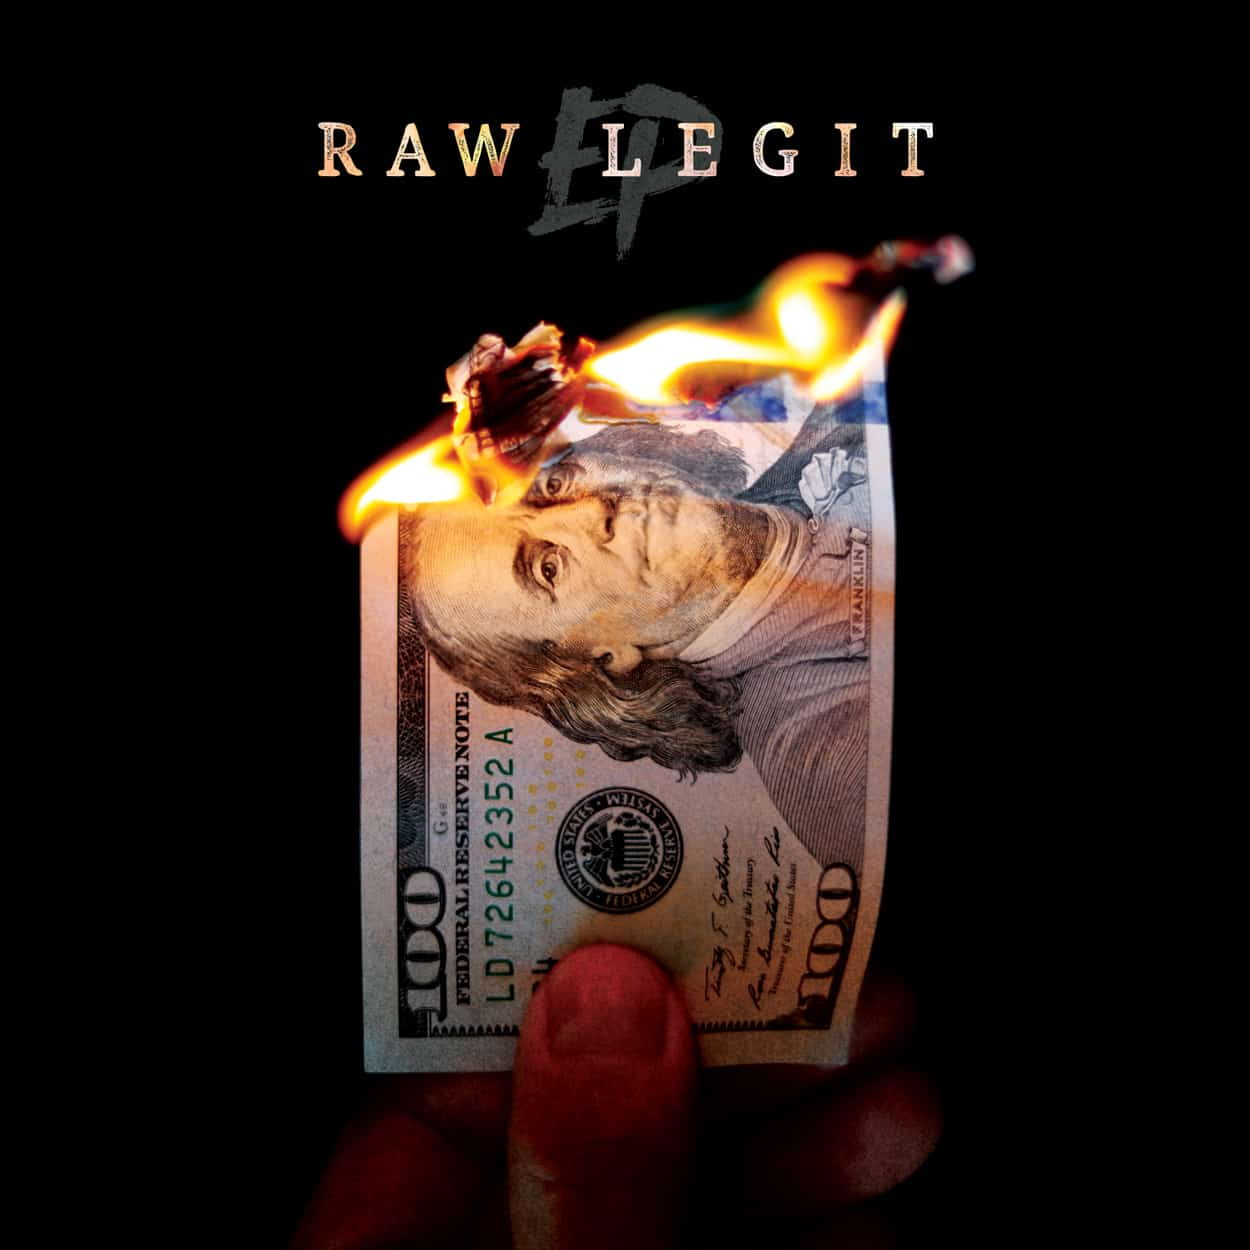 raw legit - ep - album art design